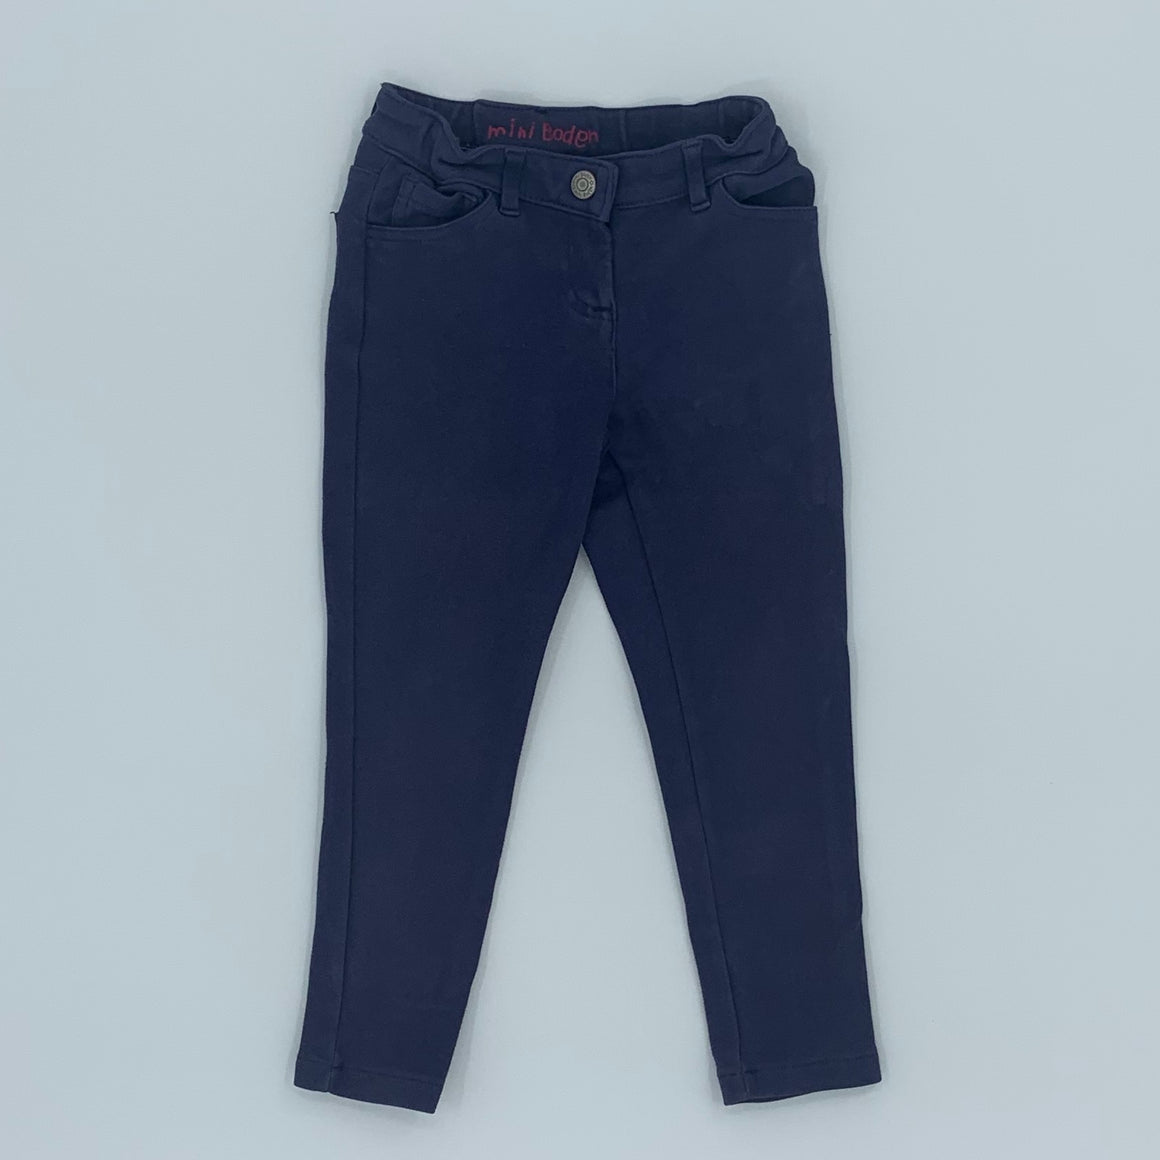 Gently Worn Boden stretch jeans size 4-5 years